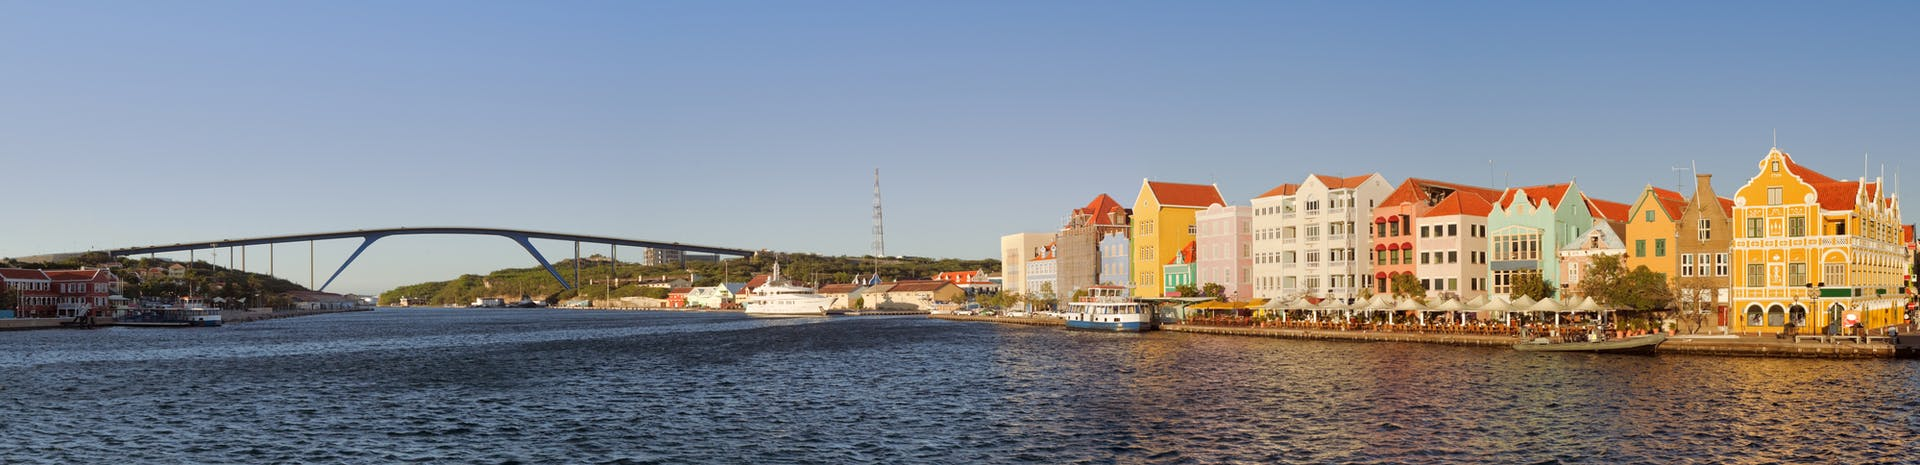 Picture of Willemstad